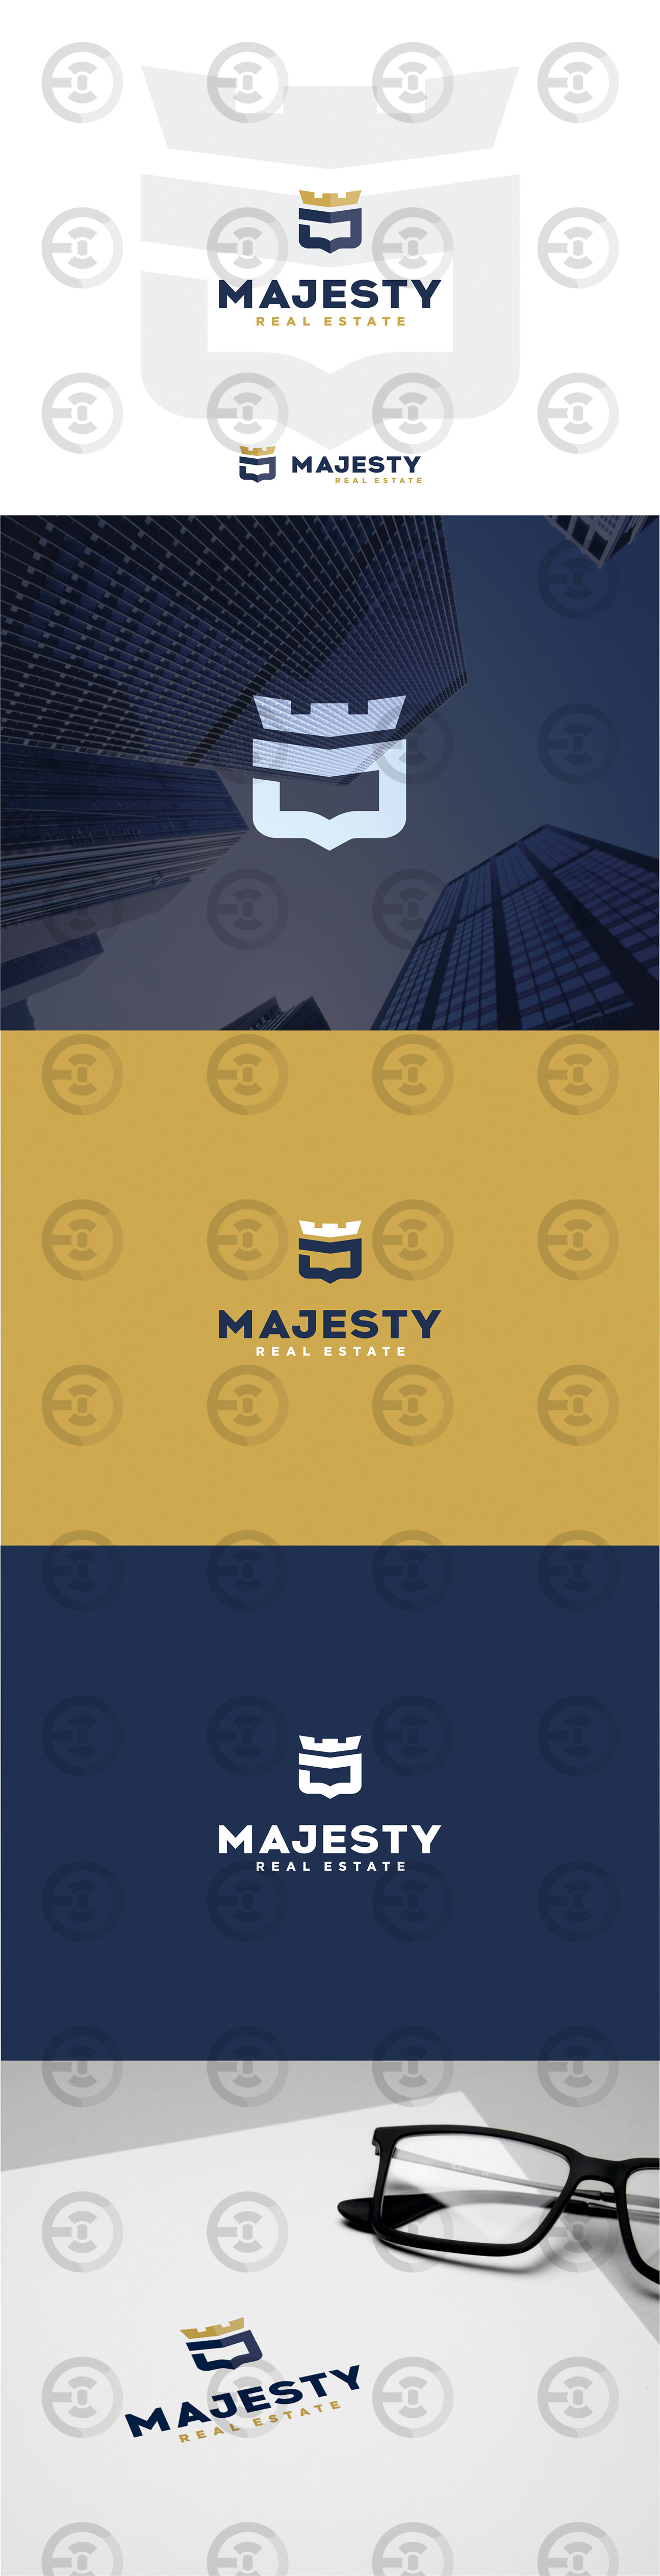 Majesty Real Estate.jpg